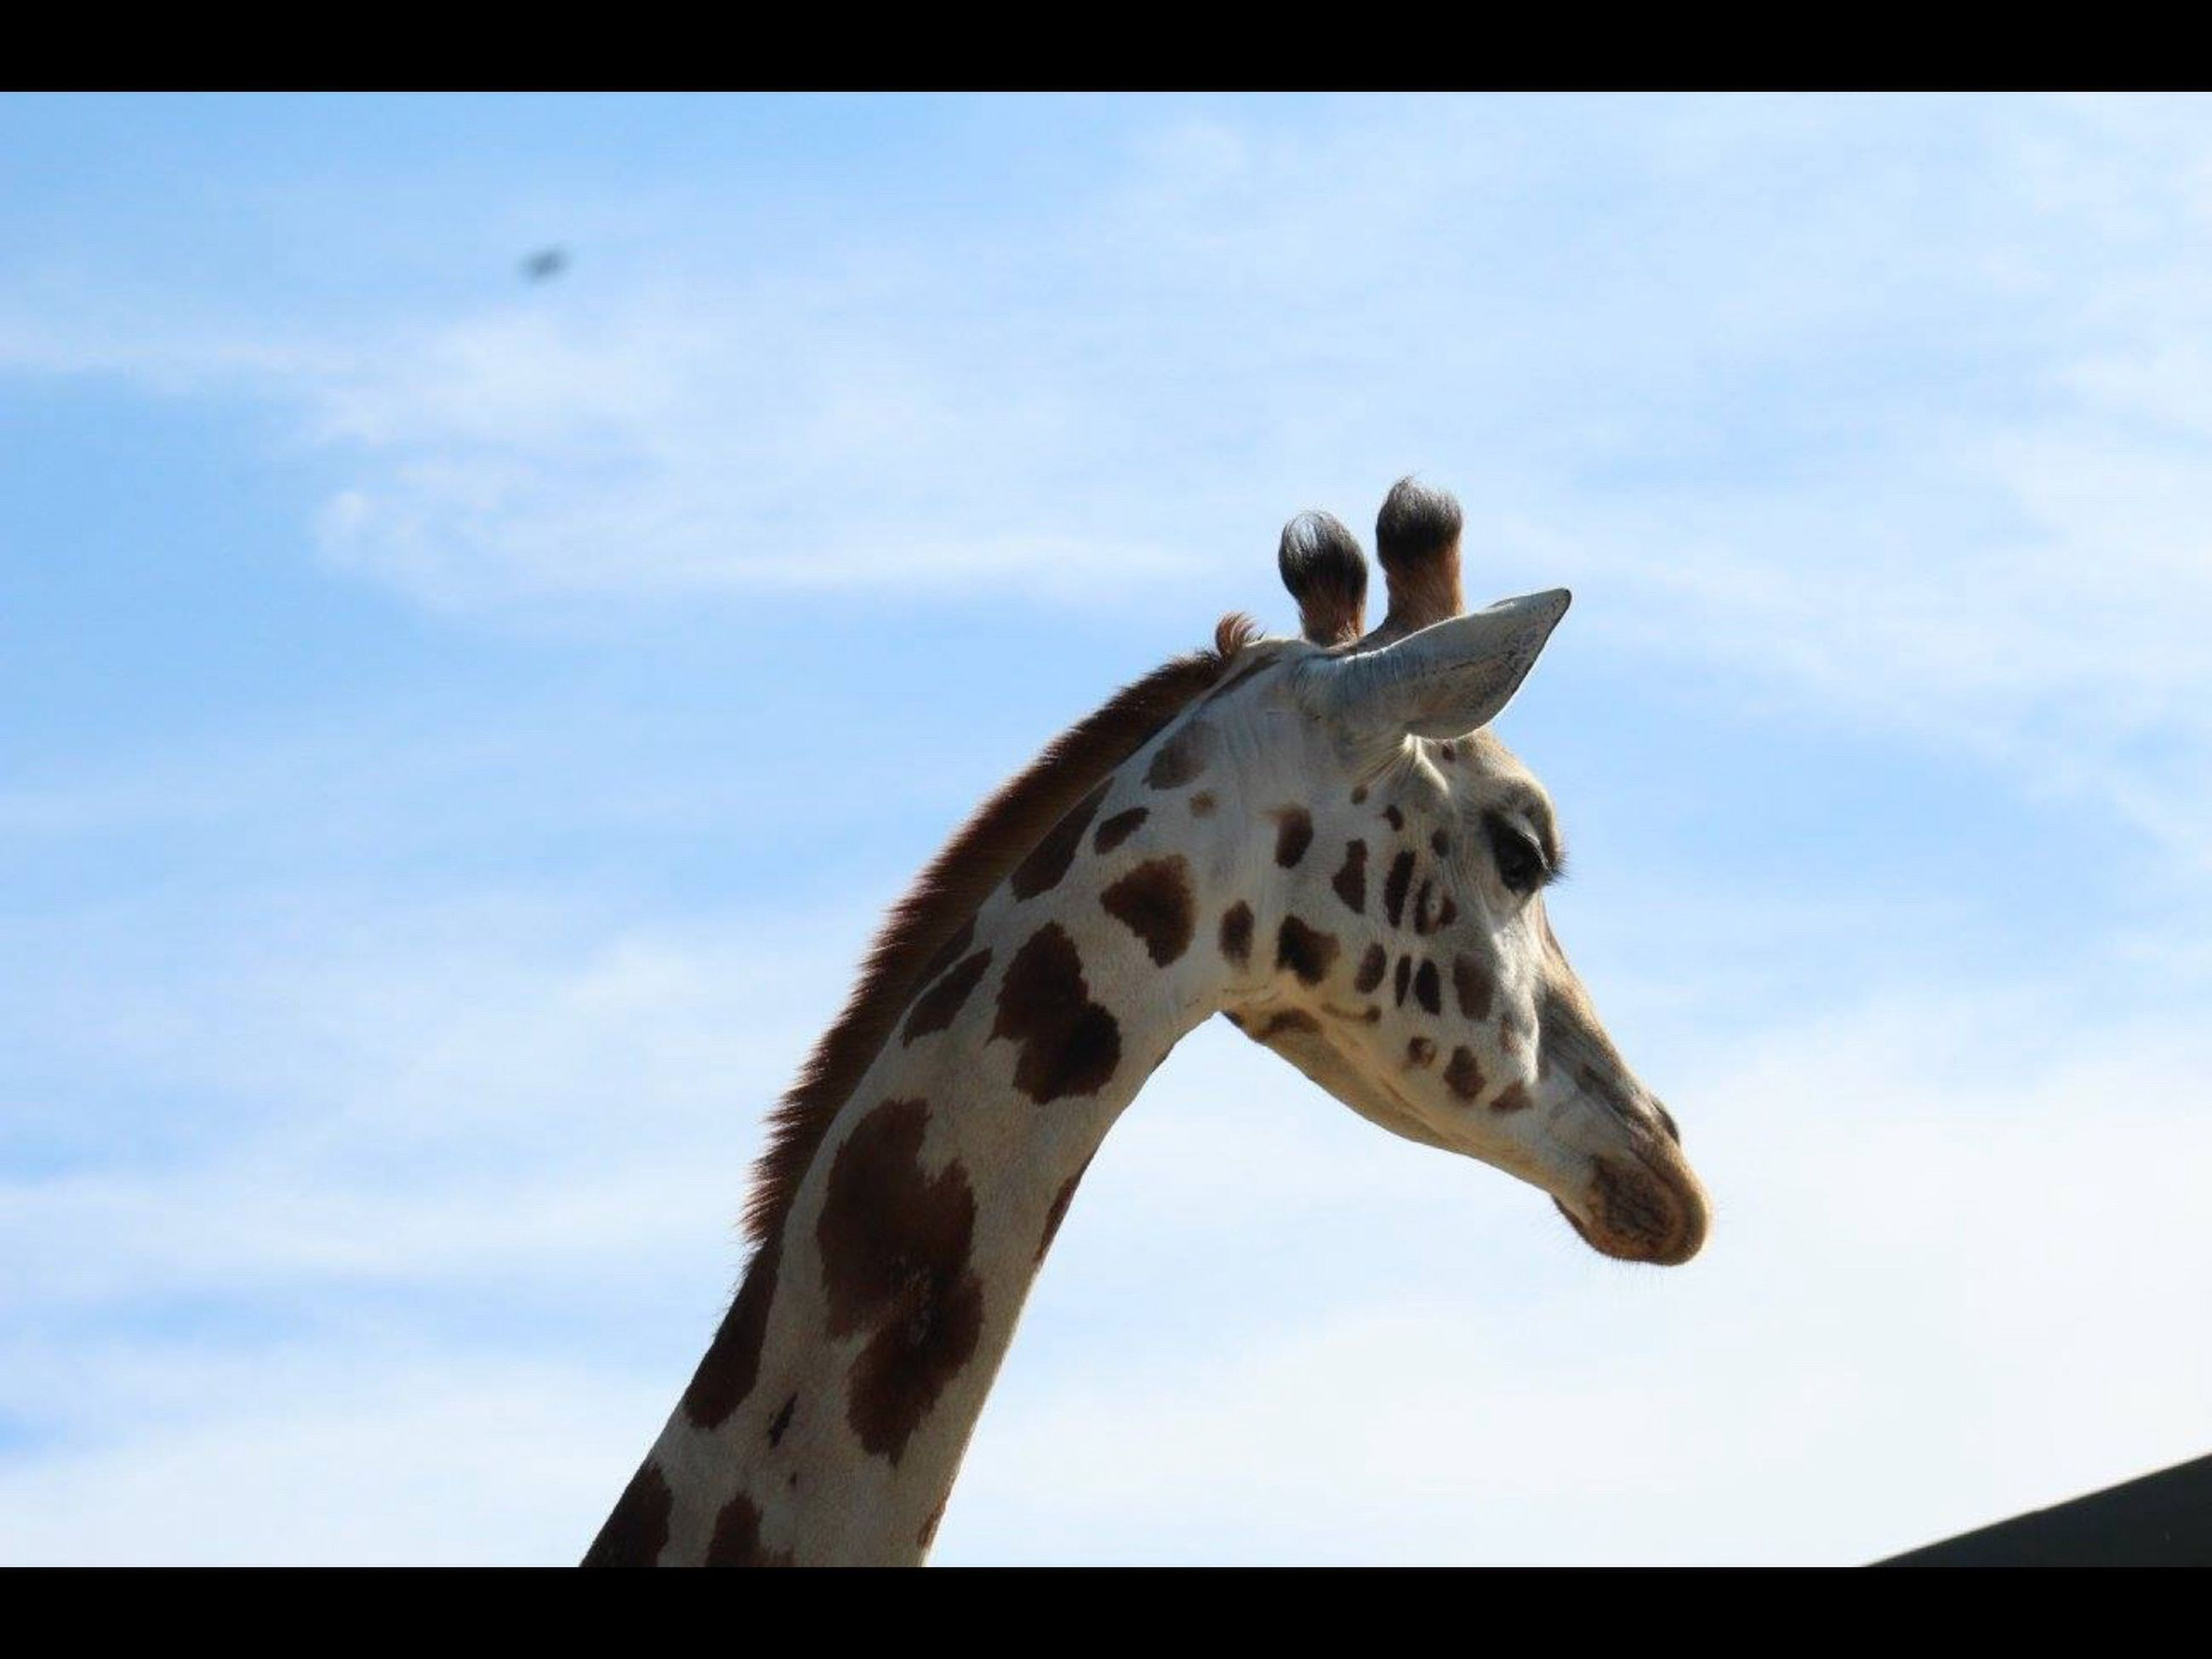 animal themes, animals in the wild, wildlife, one animal, low angle view, sky, spread wings, bird, transfer print, auto post production filter, blue, animal markings, nature, outdoors, animal wing, day, no people, perching, giraffe, zoology